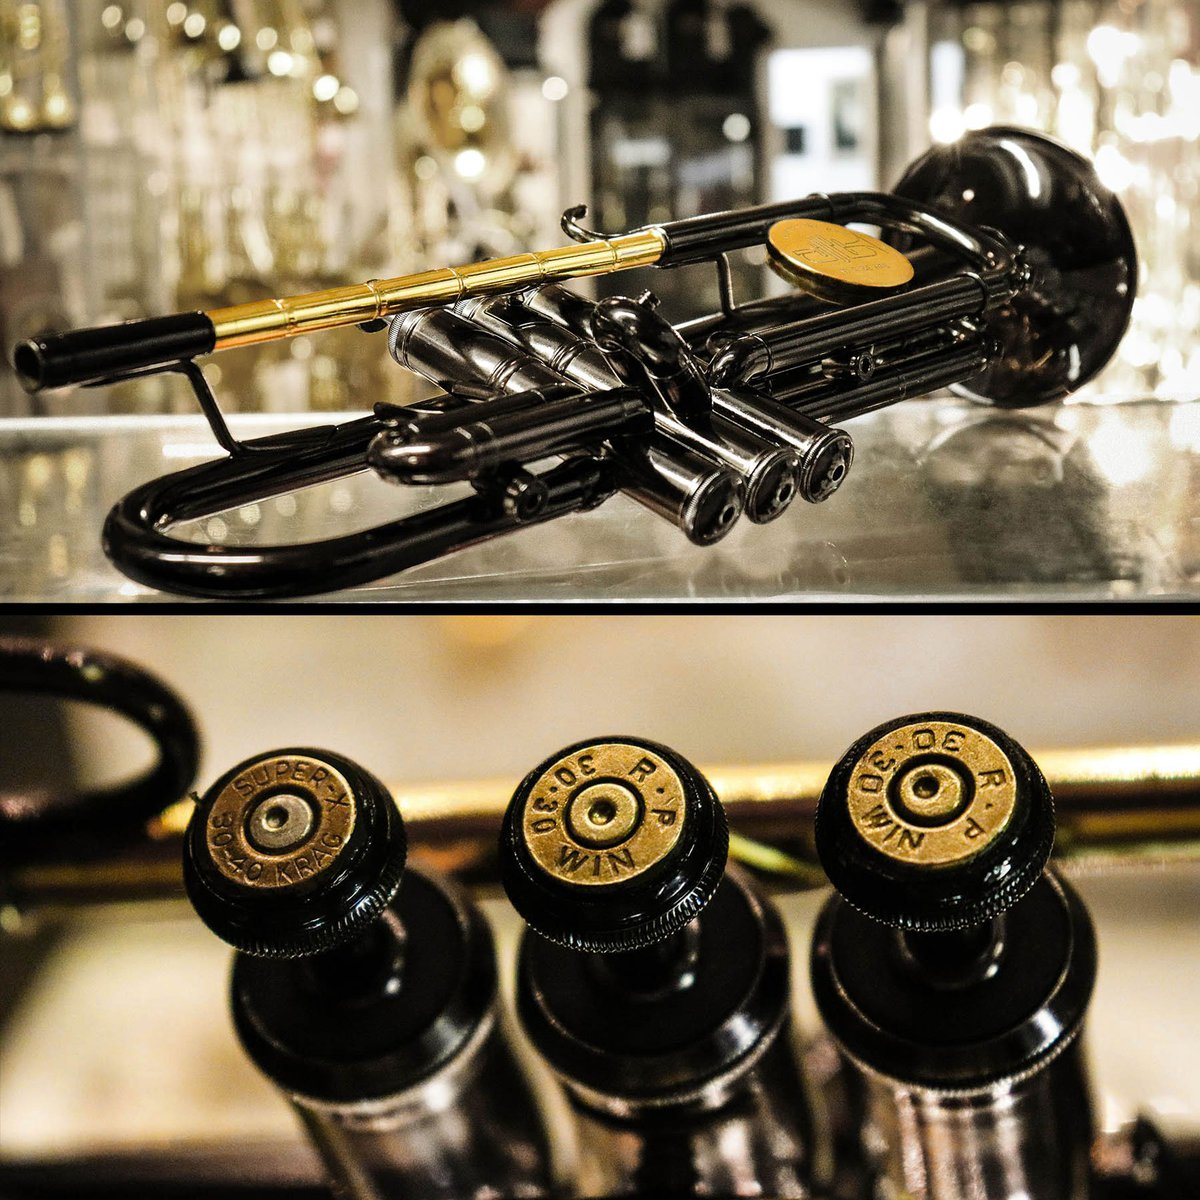 The #instrumentofhope is finally ready. It's the first of its kind trumpet made from bullet casings. Play to help us keep the gun violence conversation on the main stage. @ShineMsd